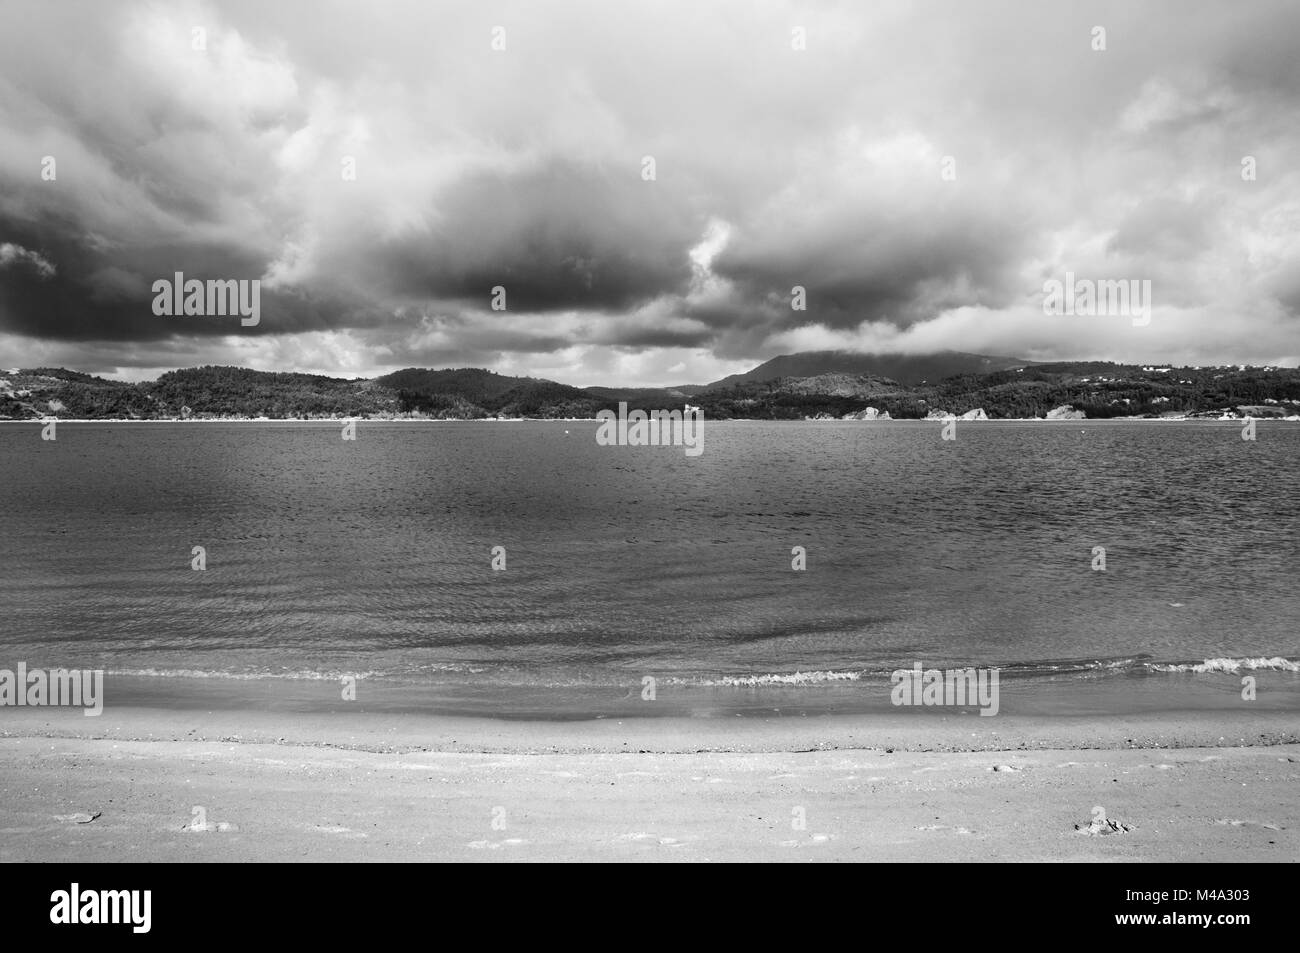 Black and white photograph of the landscape of the beach of the troia peninsula portugal a cloudy day